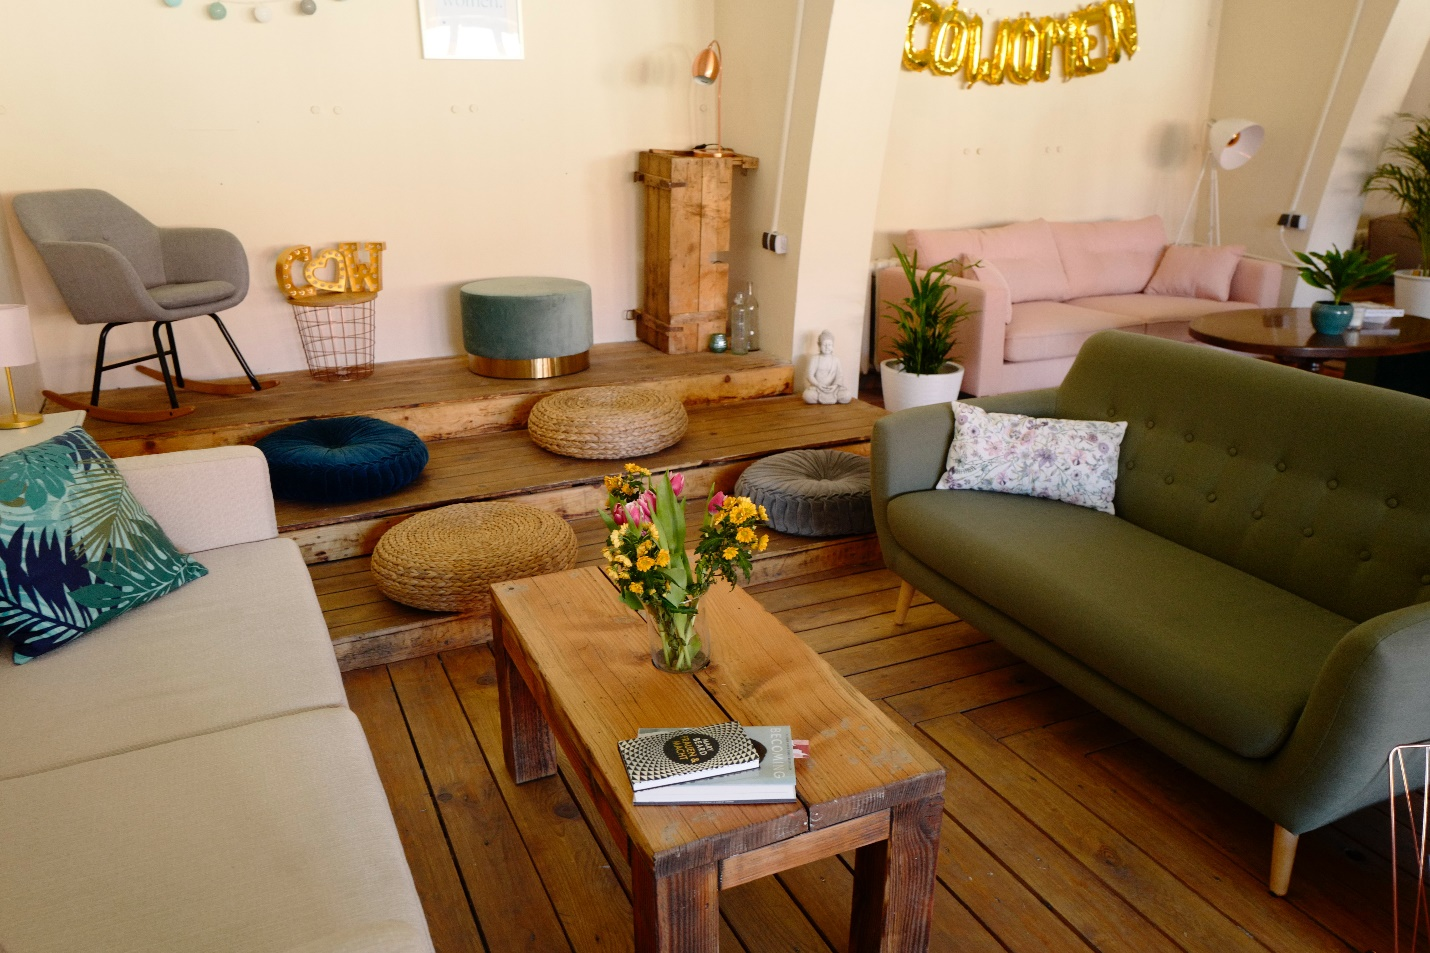 boho room with wood flooring and colorful furniture